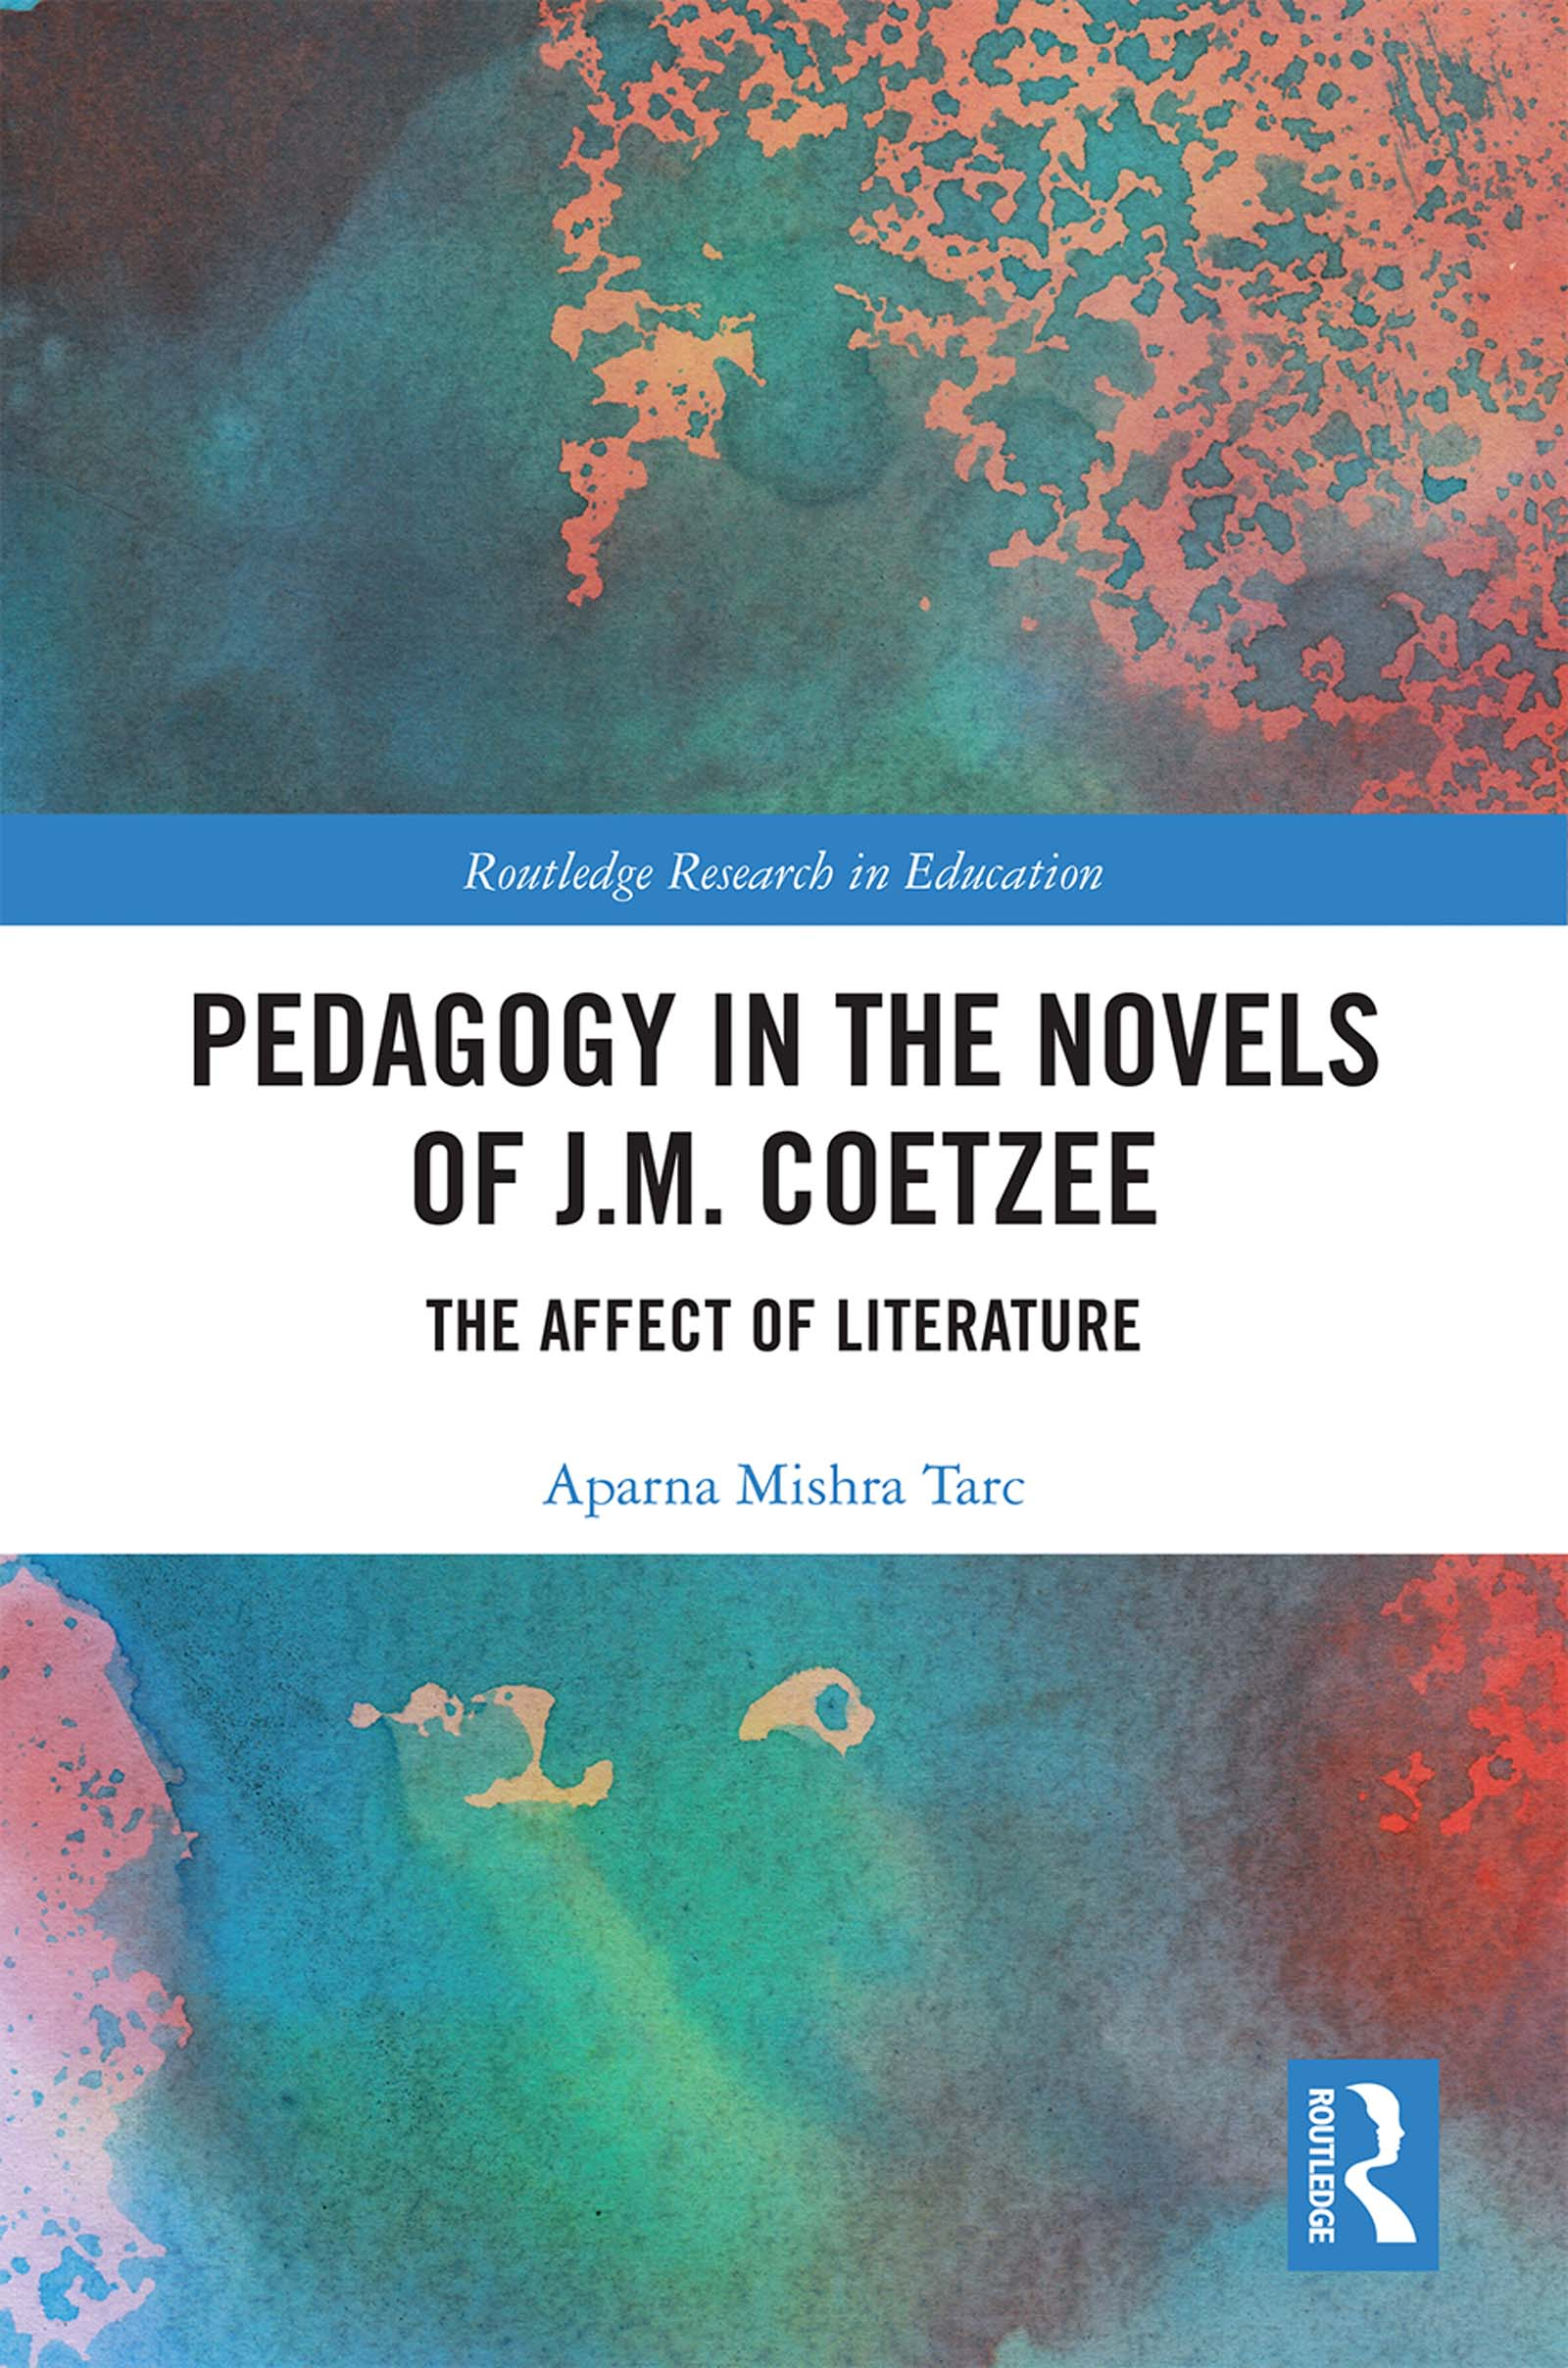 Pedagogy in the Novels of J.M. Coetzee: The Affect of Literature book cover